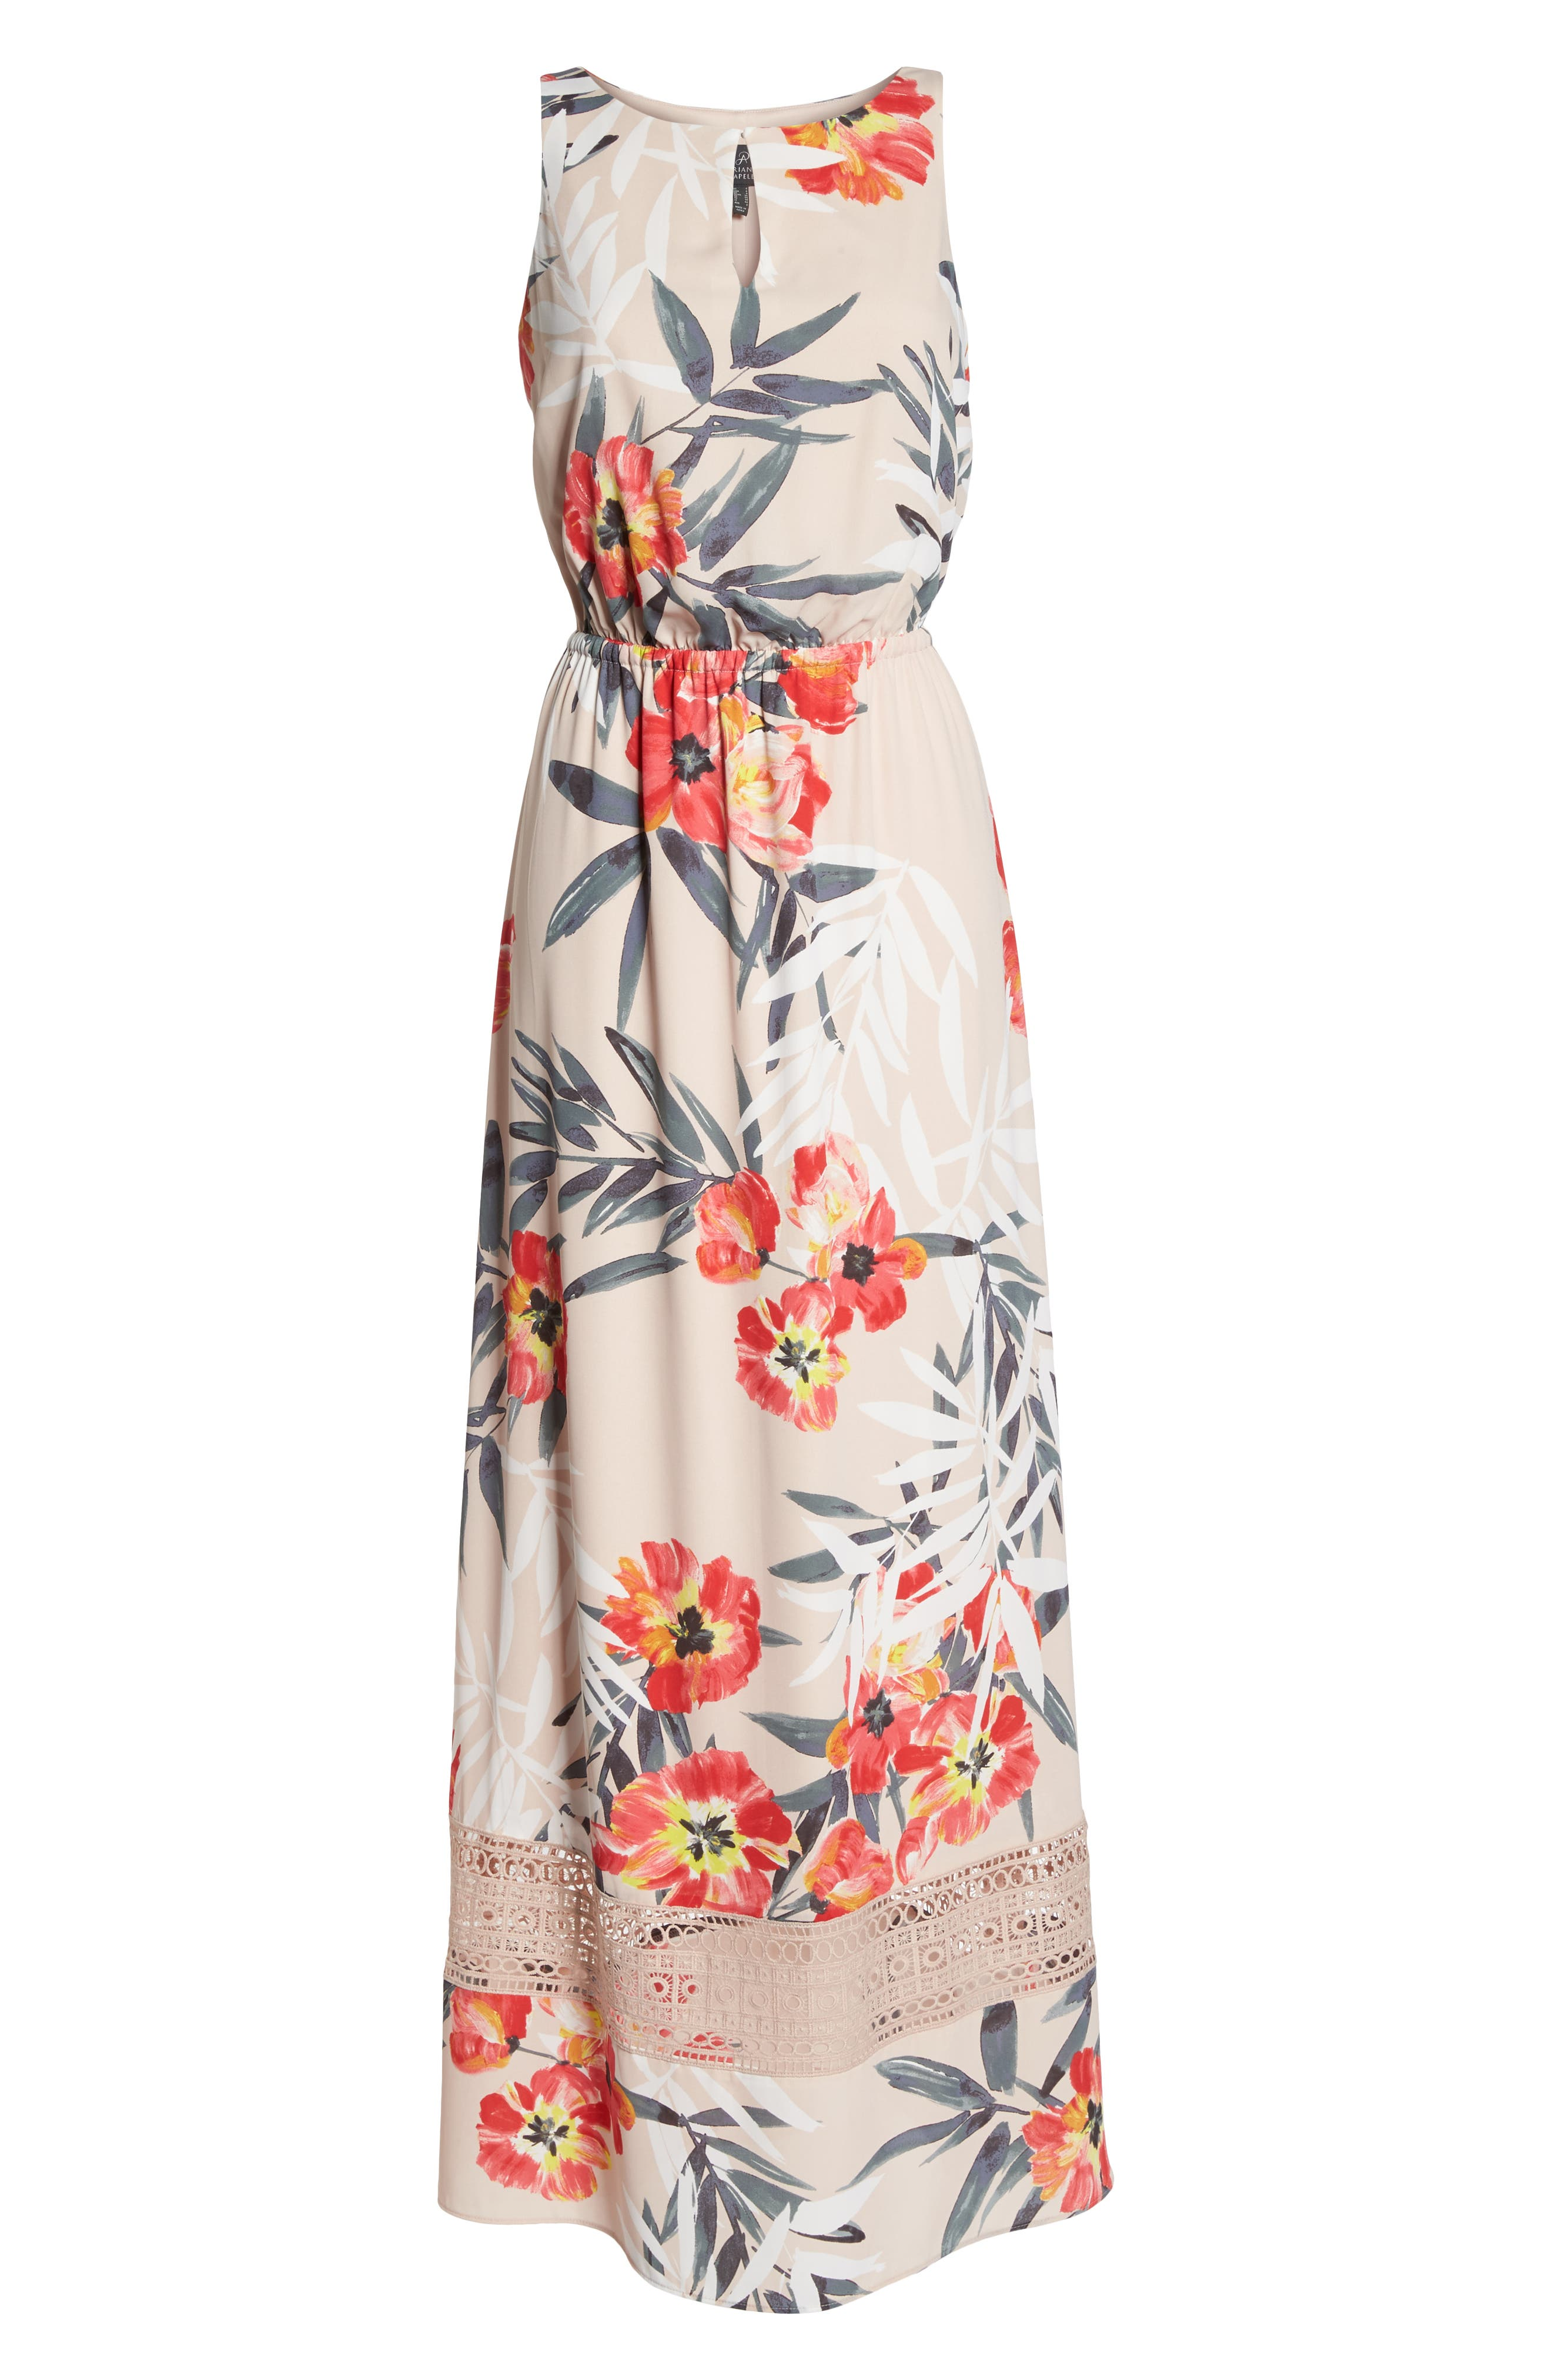 Tropical Breeze Print Maxi Dress,                             Alternate thumbnail 7, color,                             250